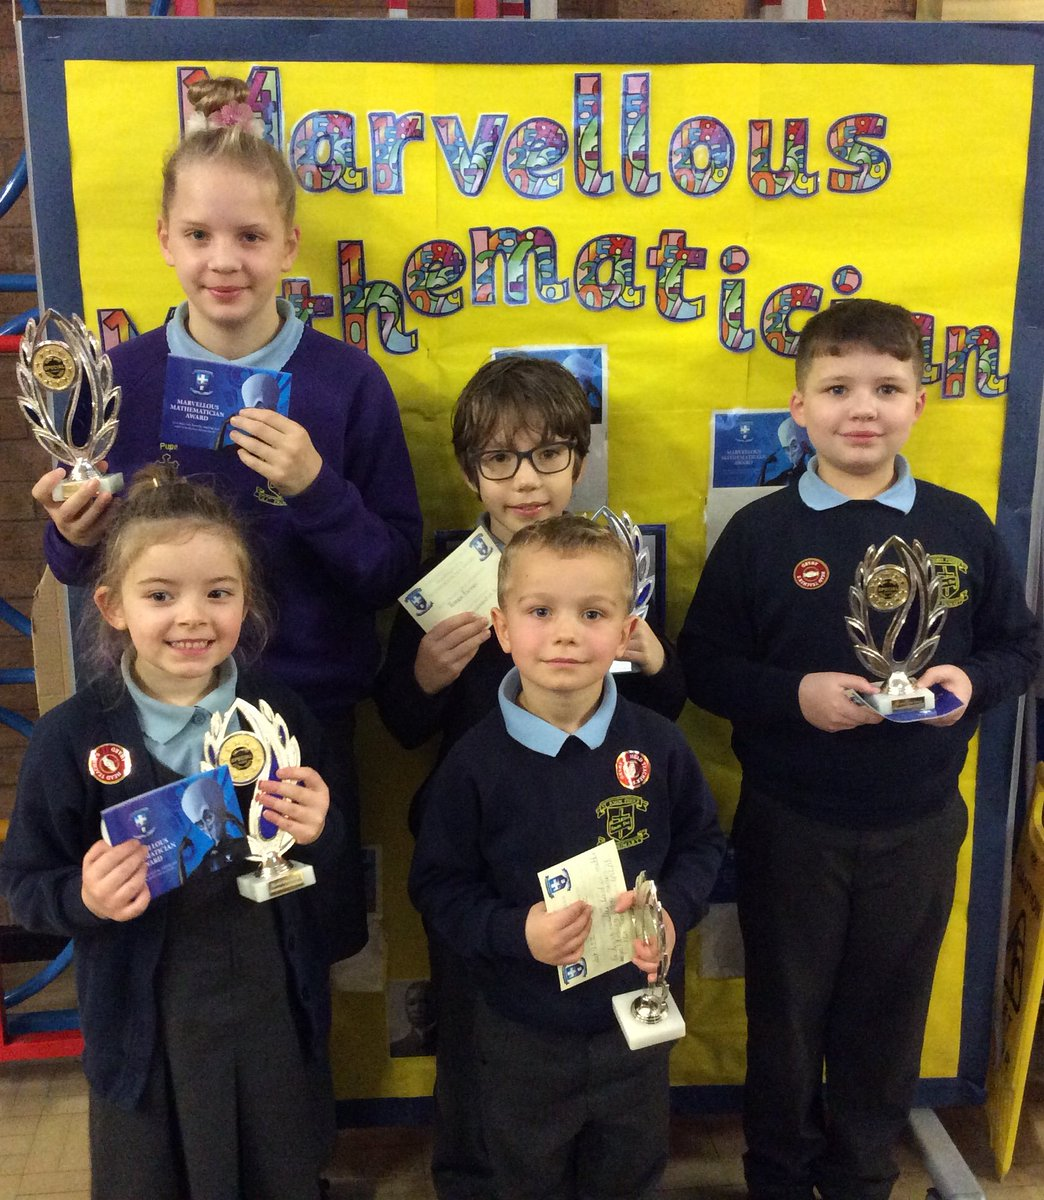 Star Writers and Marvellous Mathematicians of the week awards. Well done to all children.